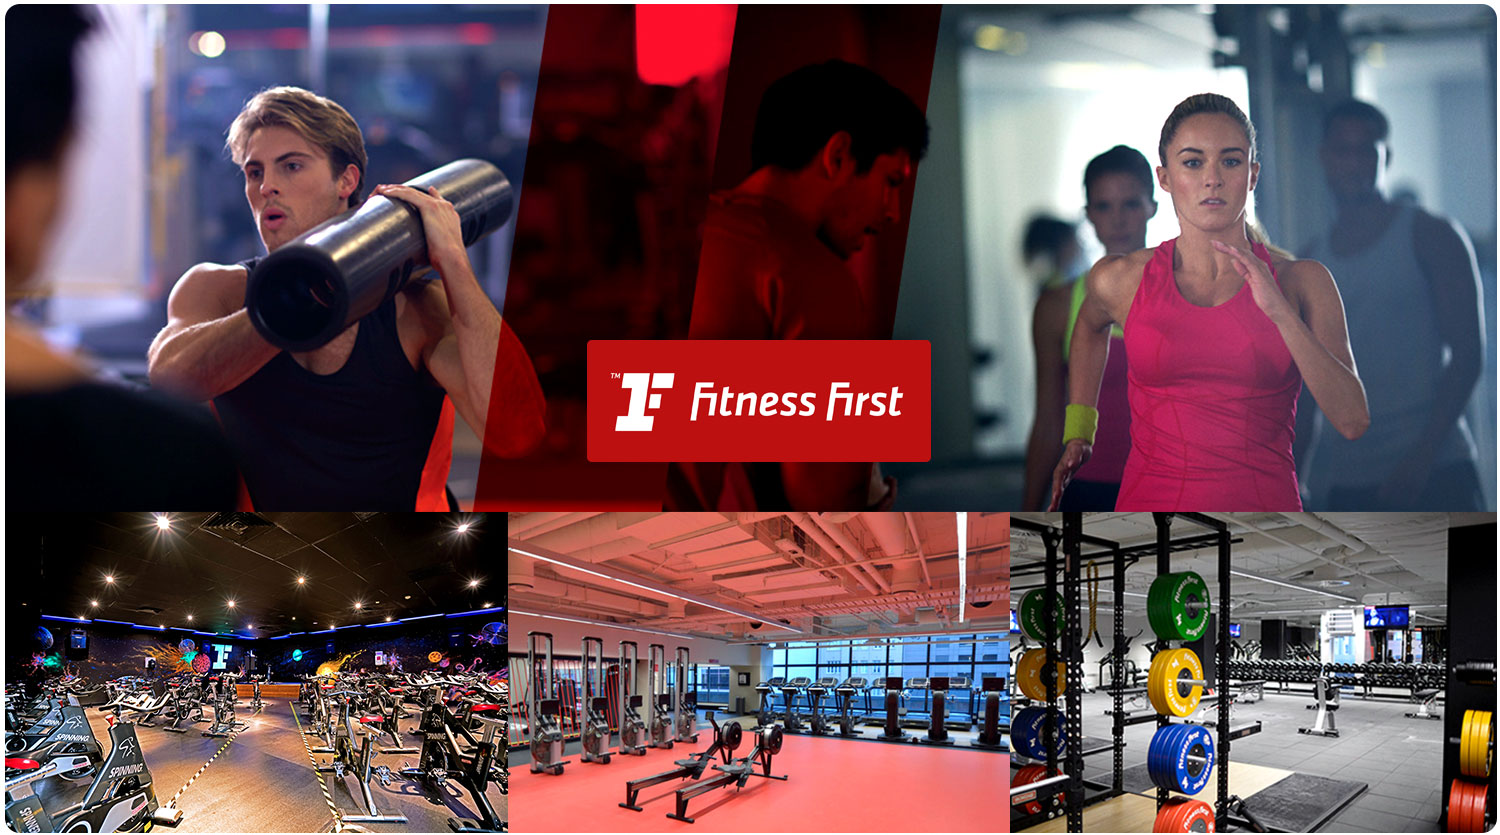 Start your Fitness Journey at the flagship $7 million Fitness First for only $9.95 for 1 week at Fitness First Platinum Flinders St Melbourne. Experience our first class gym, our unique Rooftop training area and freestyle classes inc. Yoga, Pilates, Zumba, Boxing, HIIT, Les Mills and more. Take the first step with Fitness First Platinum Flinders St Melbourne.